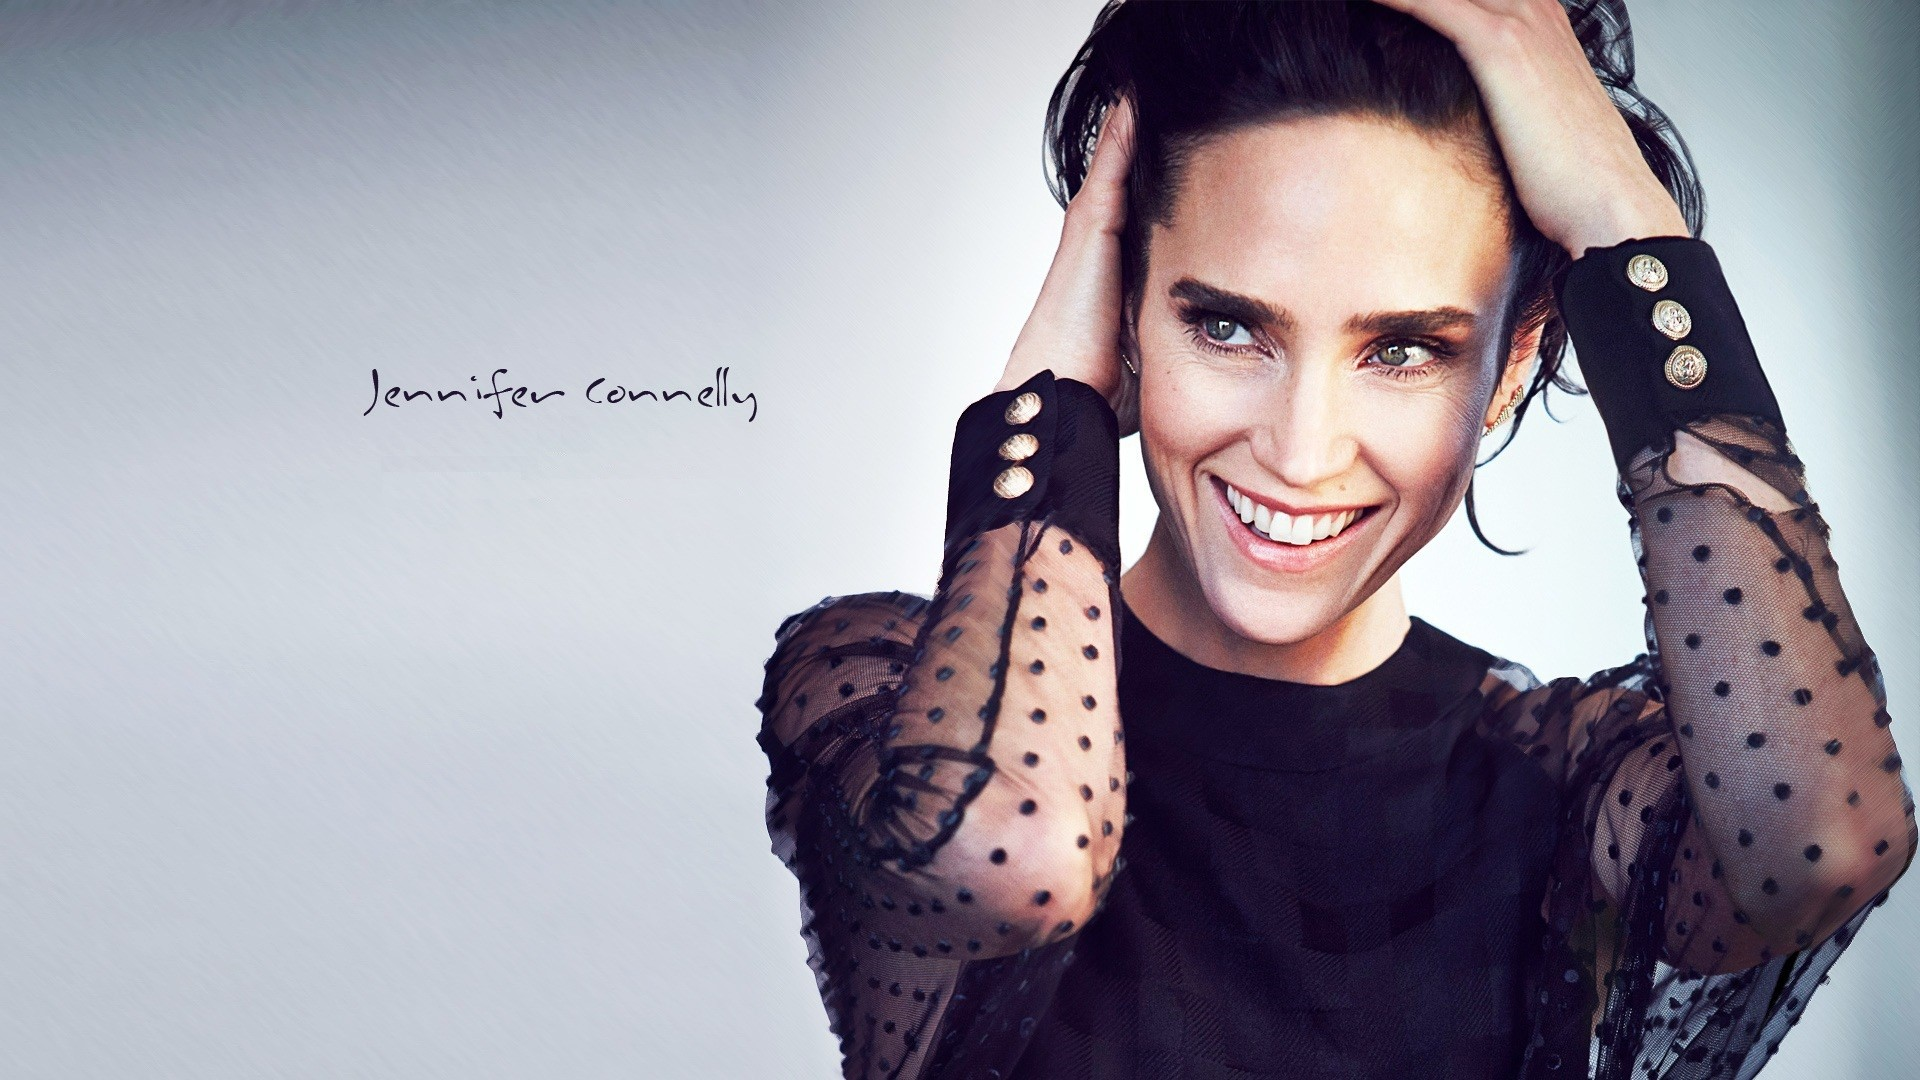 Jennifer Connelly Wallpapers HQ